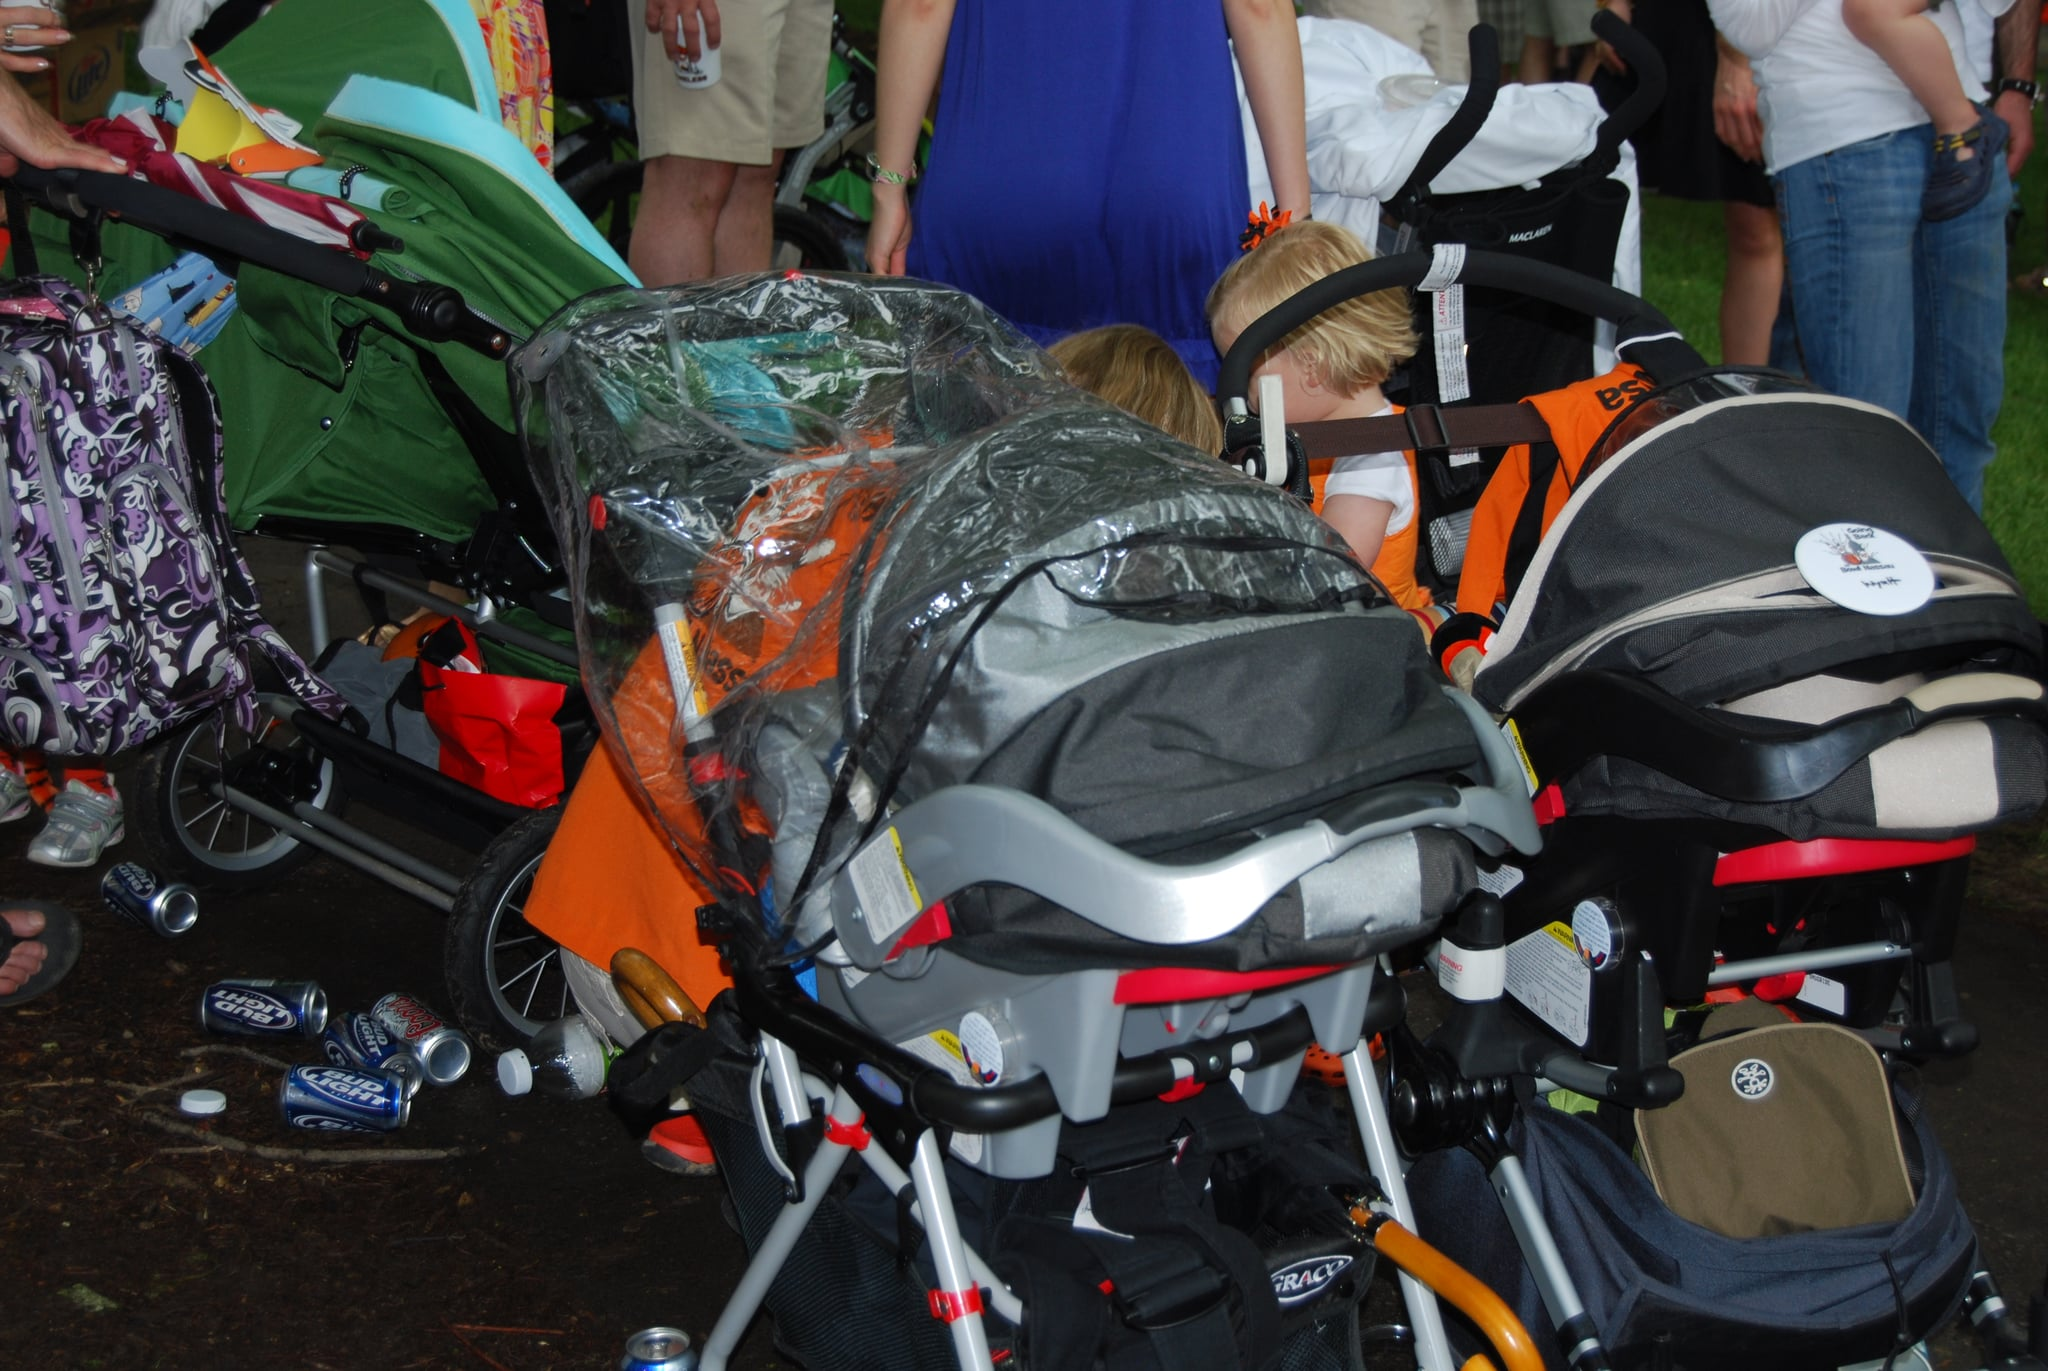 The stroller parking lot.